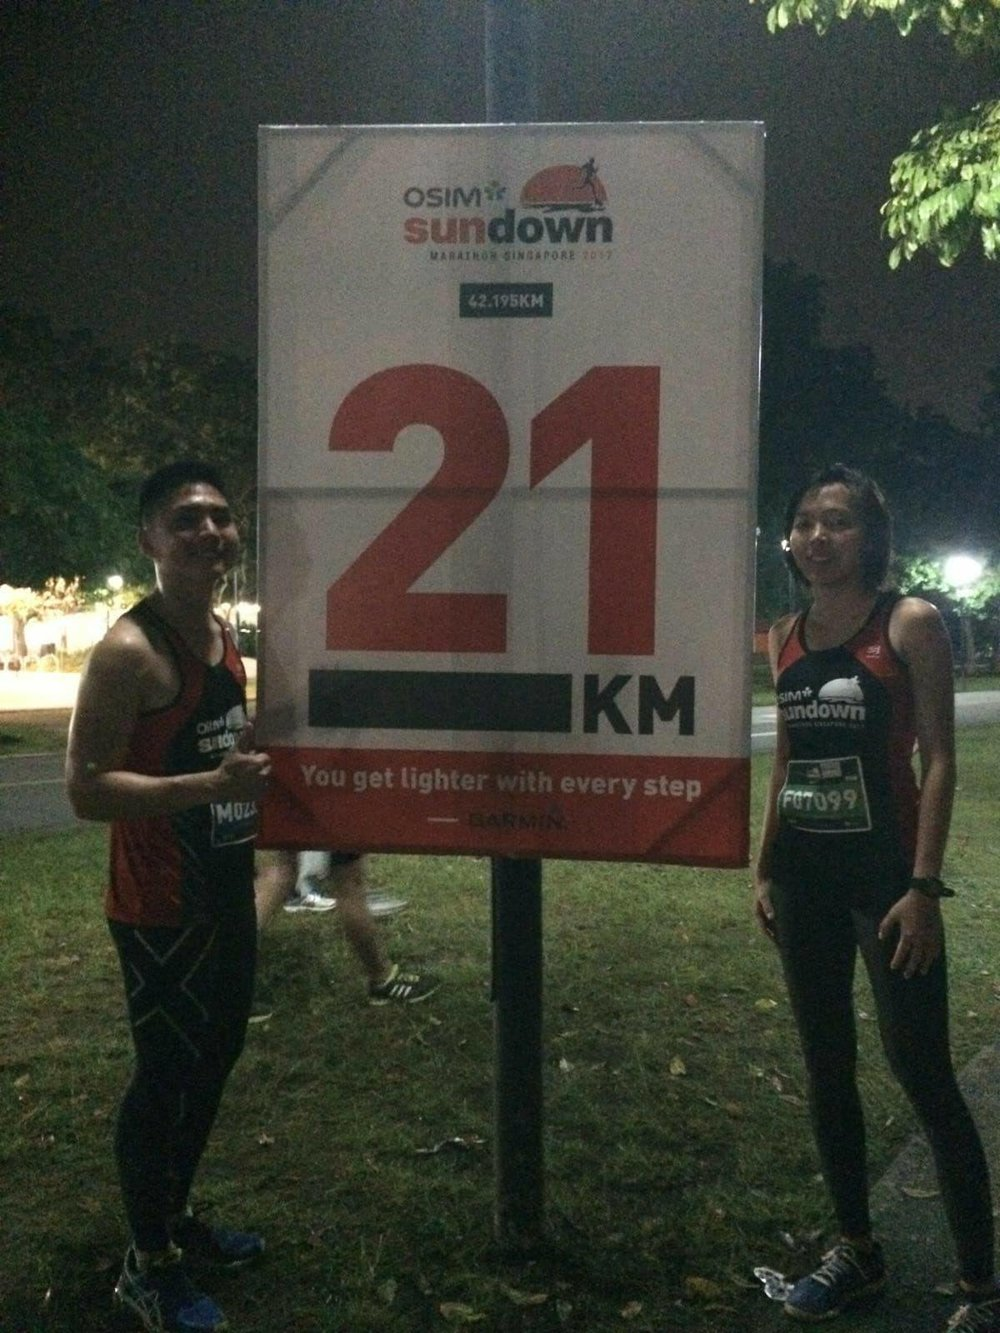 The banner says it. We were at 21KM (end of comfort zone).